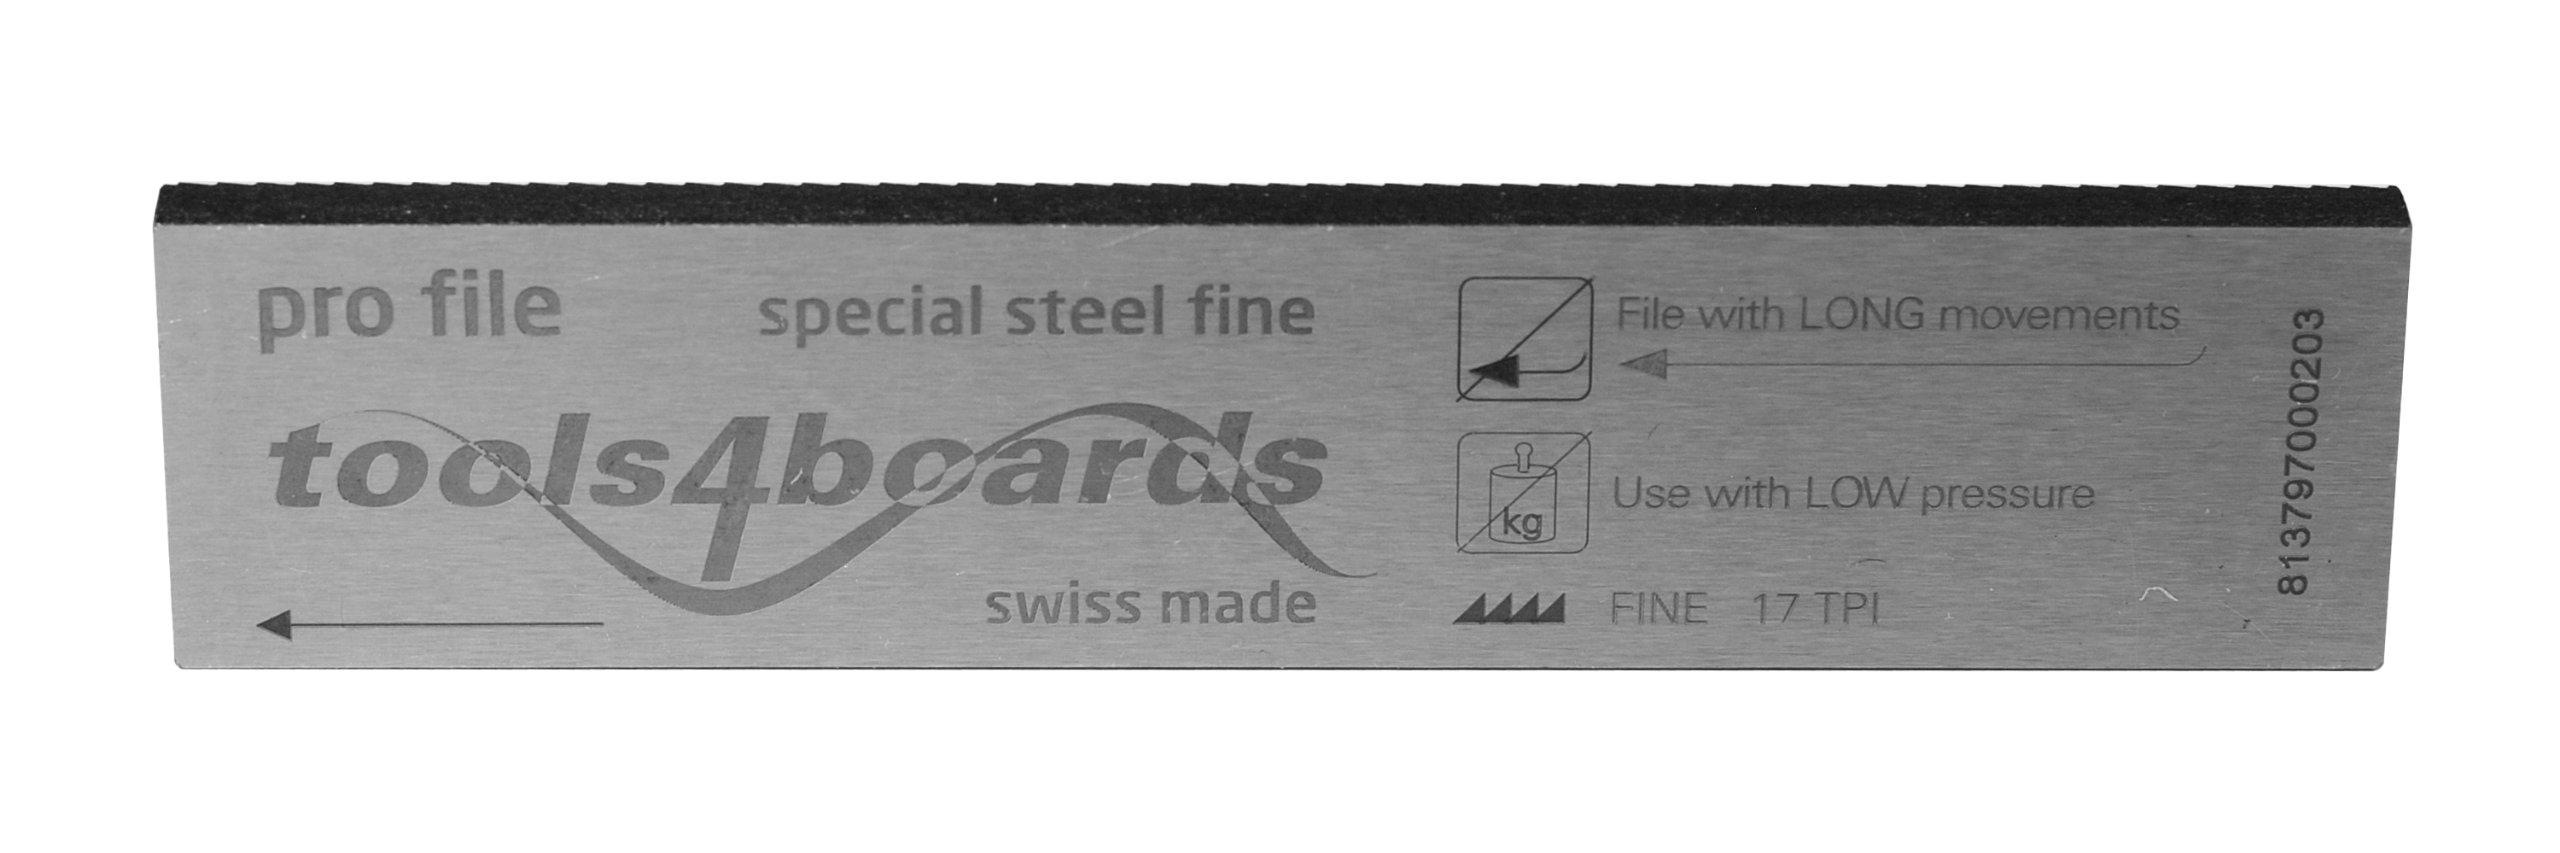 Tools4Boards Pro File Fine Cut Special Steel Race Ski and Snowboard File (4-Inch/100mm) by Tools4Boards